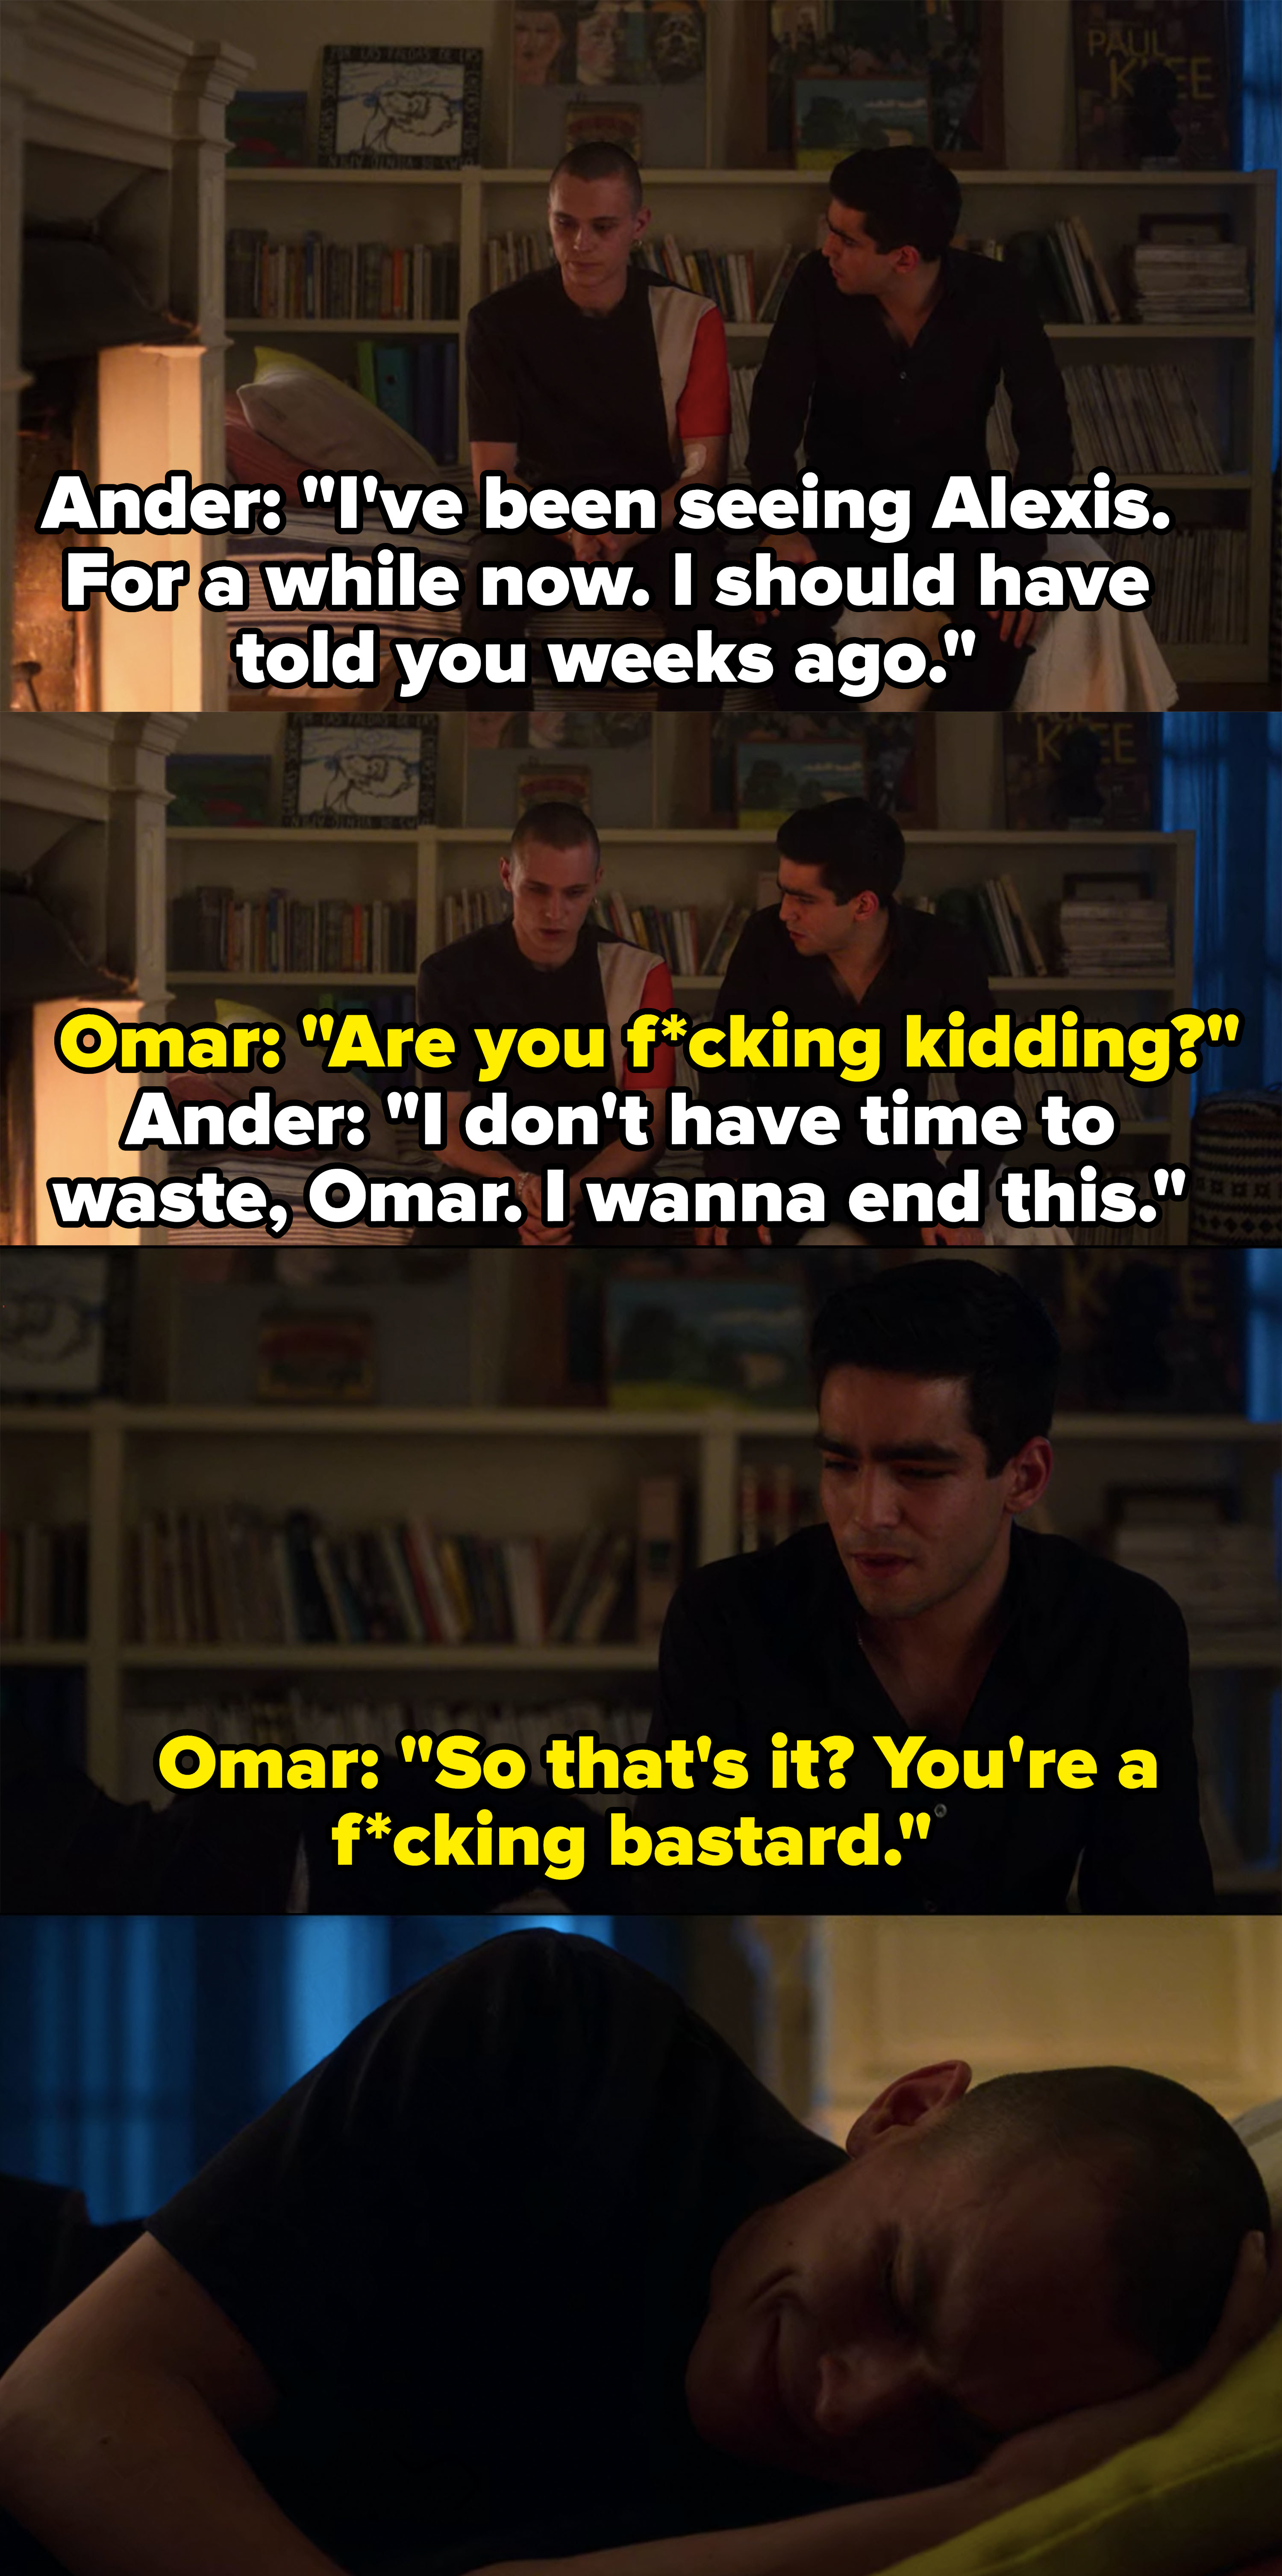 Ander lies to Omar and says he's cheating on him so that he can avoid confronting Omar over his actual cheating, Omar calls him a bastard and Ander turns away sobbing